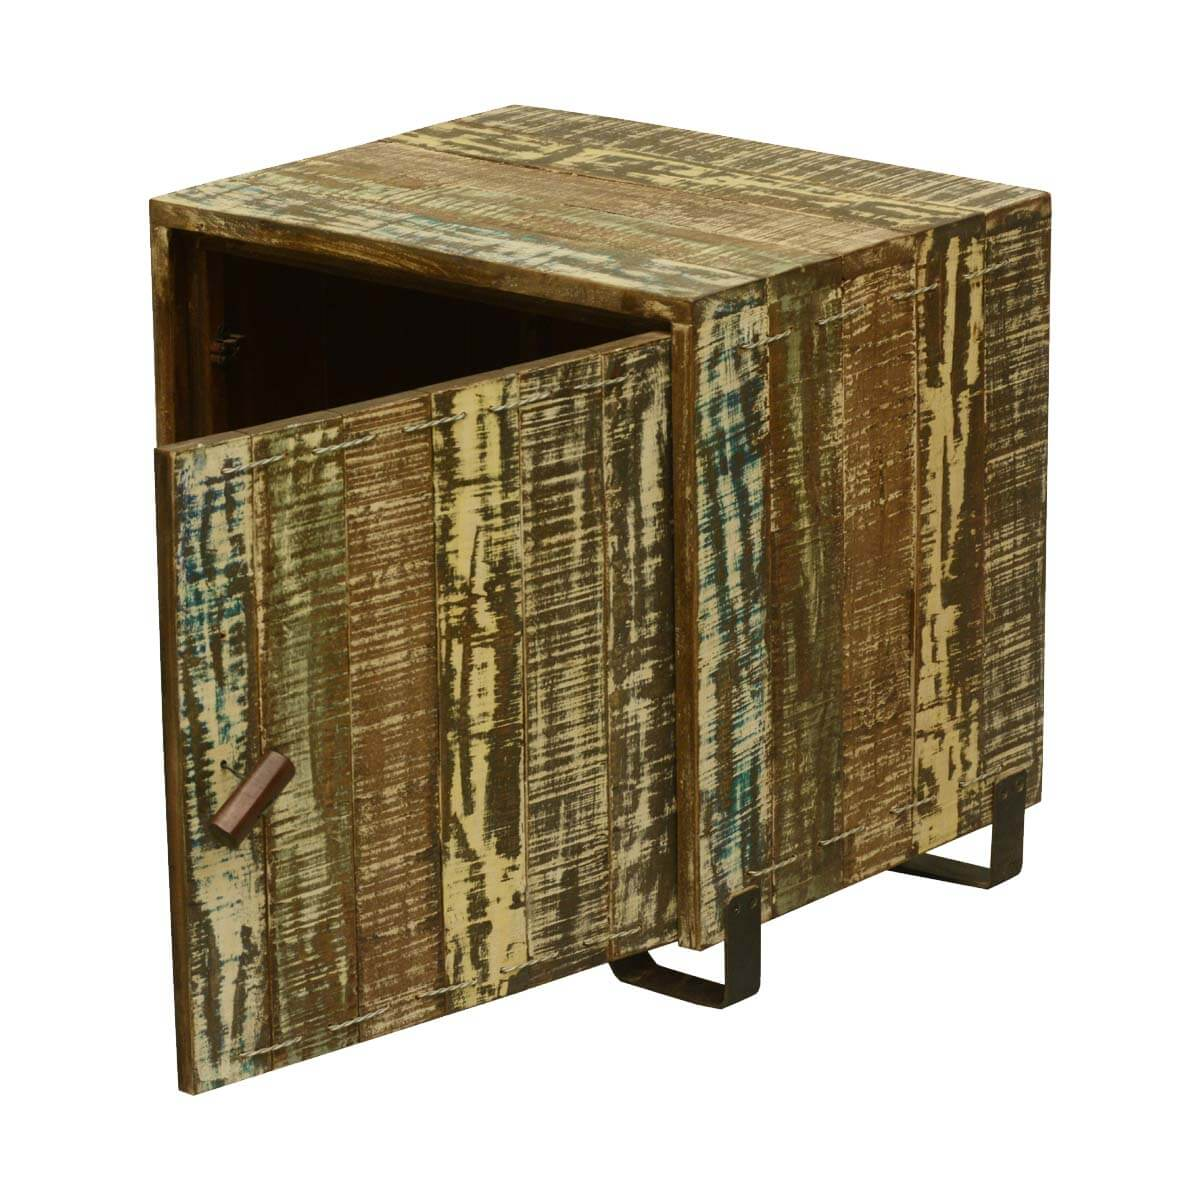 Wood Cube End Table Rustic Rural Reclaimed Wood End Table Cube Cabinet W